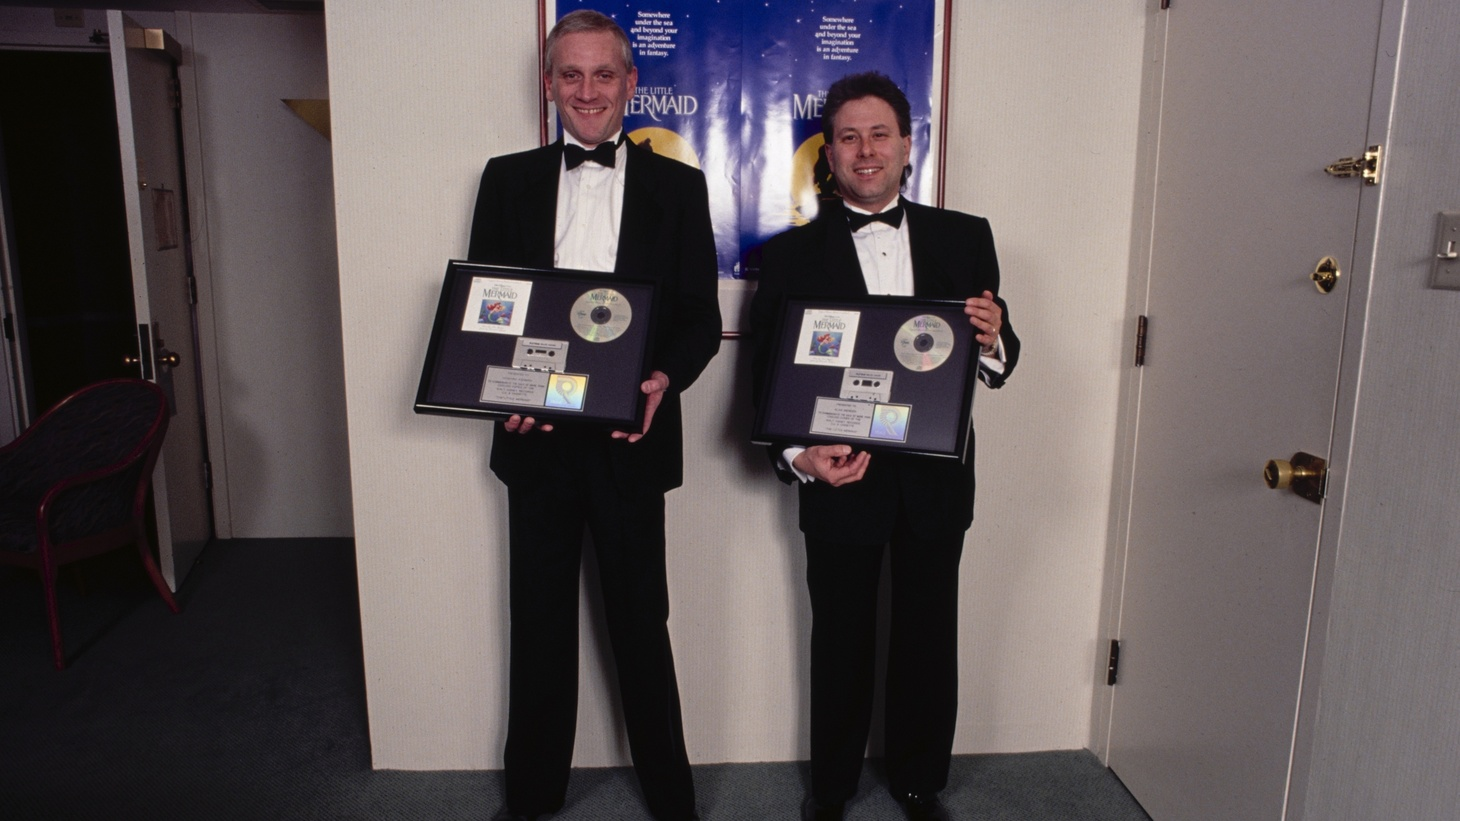 """Howard Ashman (L) and Alan Menken (R) wrote the soundtracks for """"The Little Mermaid,"""" """"Beauty and the Beast,"""" and """"Aladdin."""""""